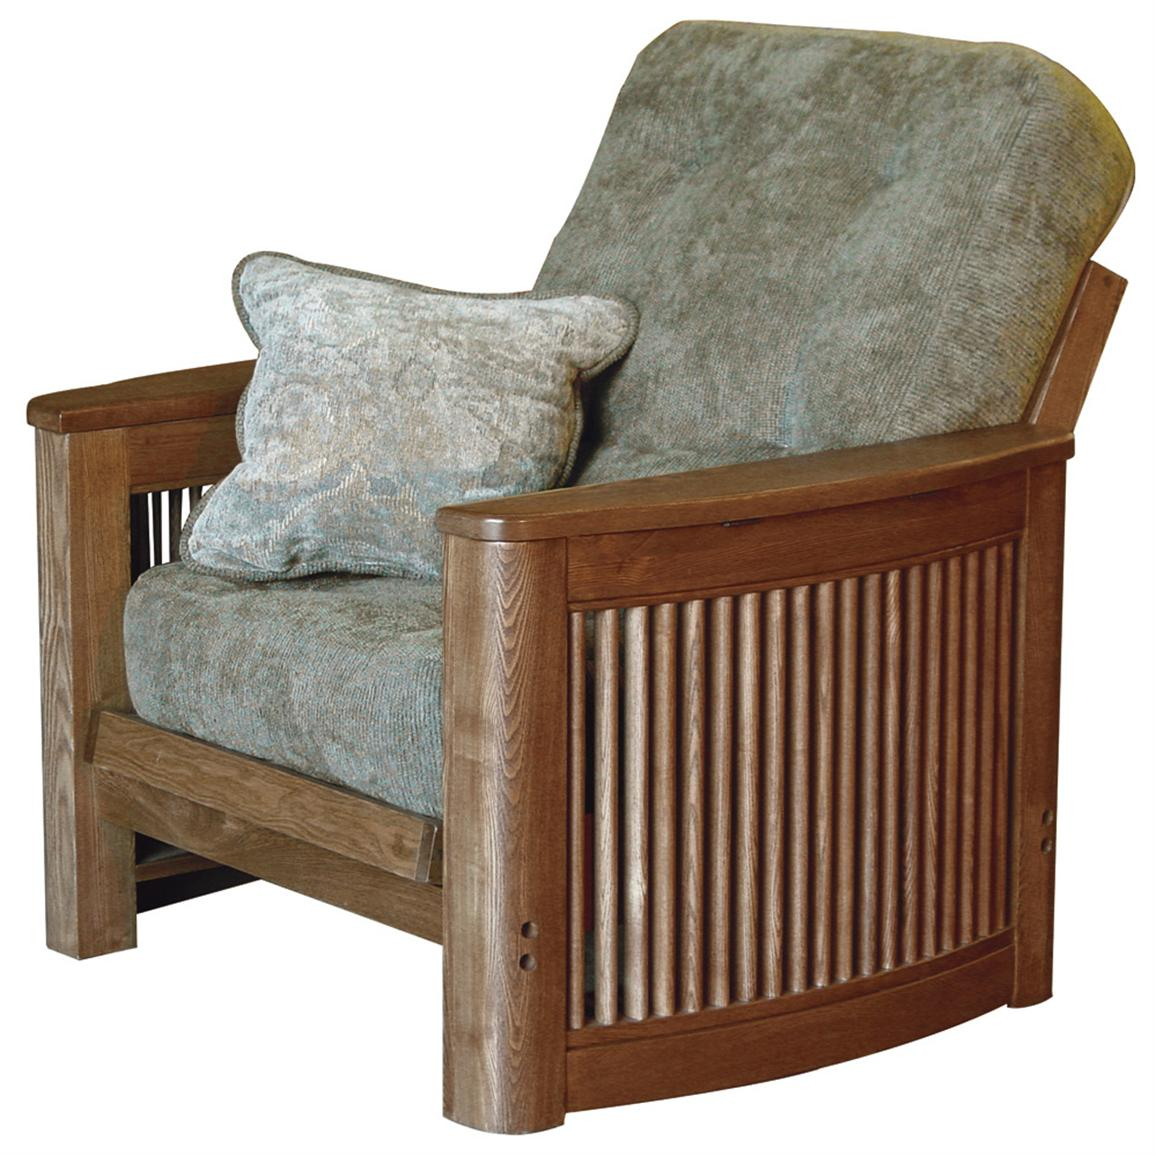 Park Ave Chaddock Chair with TDC Mattress